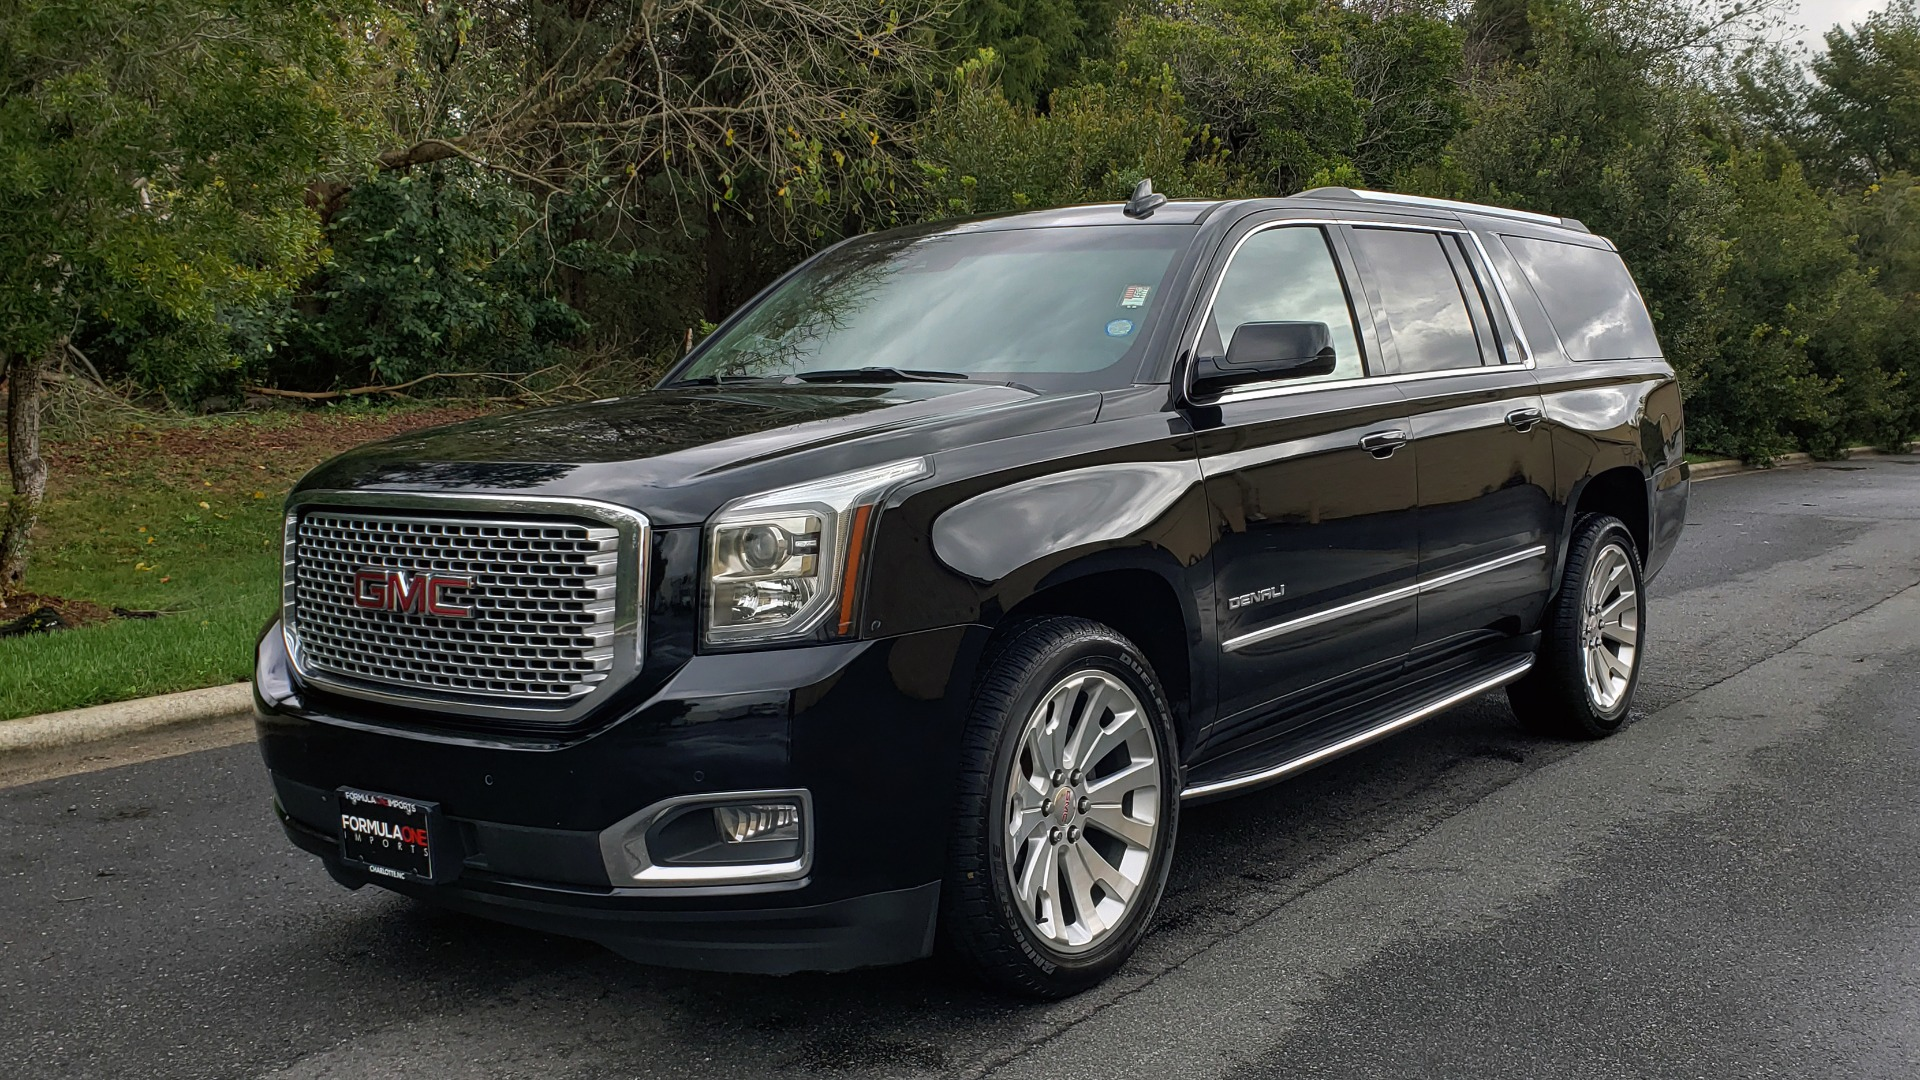 Used 2017 GMC YUKON XL DENALI 4WD / NAV / SUNROOF / ENT / 3-ROWS / BOSE / REARVIEW for sale $48,695 at Formula Imports in Charlotte NC 28227 1